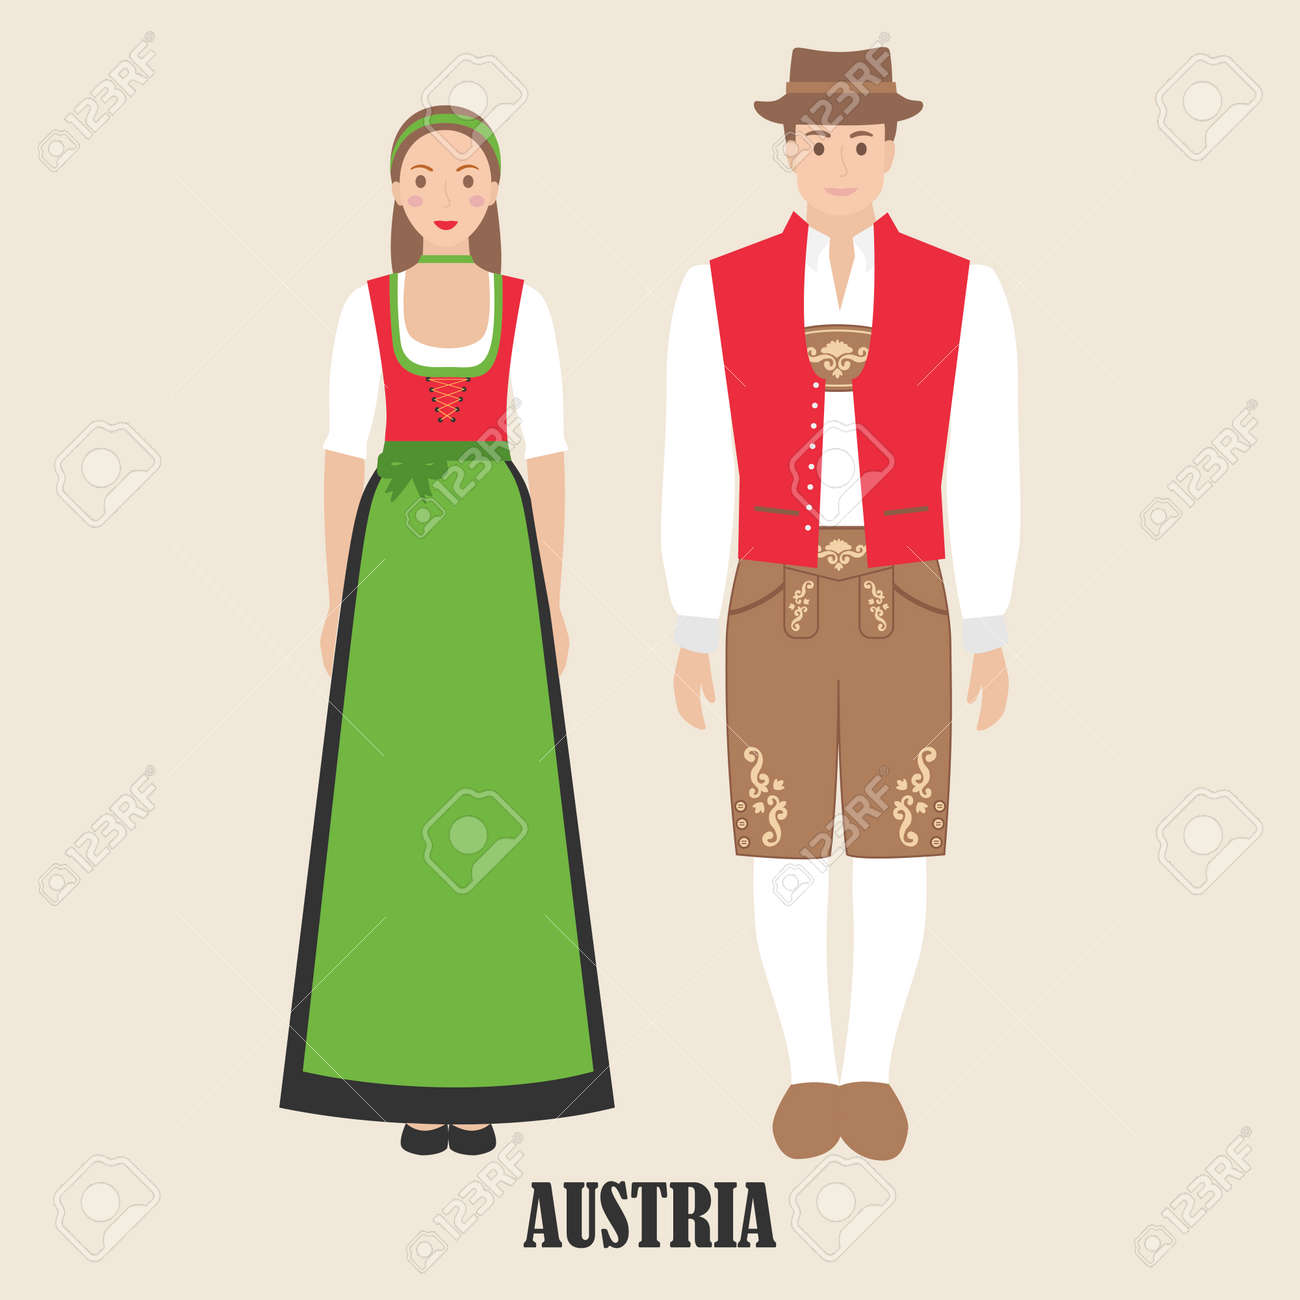 Austrians in national dress. Man and woman in traditional costume. Travel to Austria. People. Vector flat illustration. - 124875423